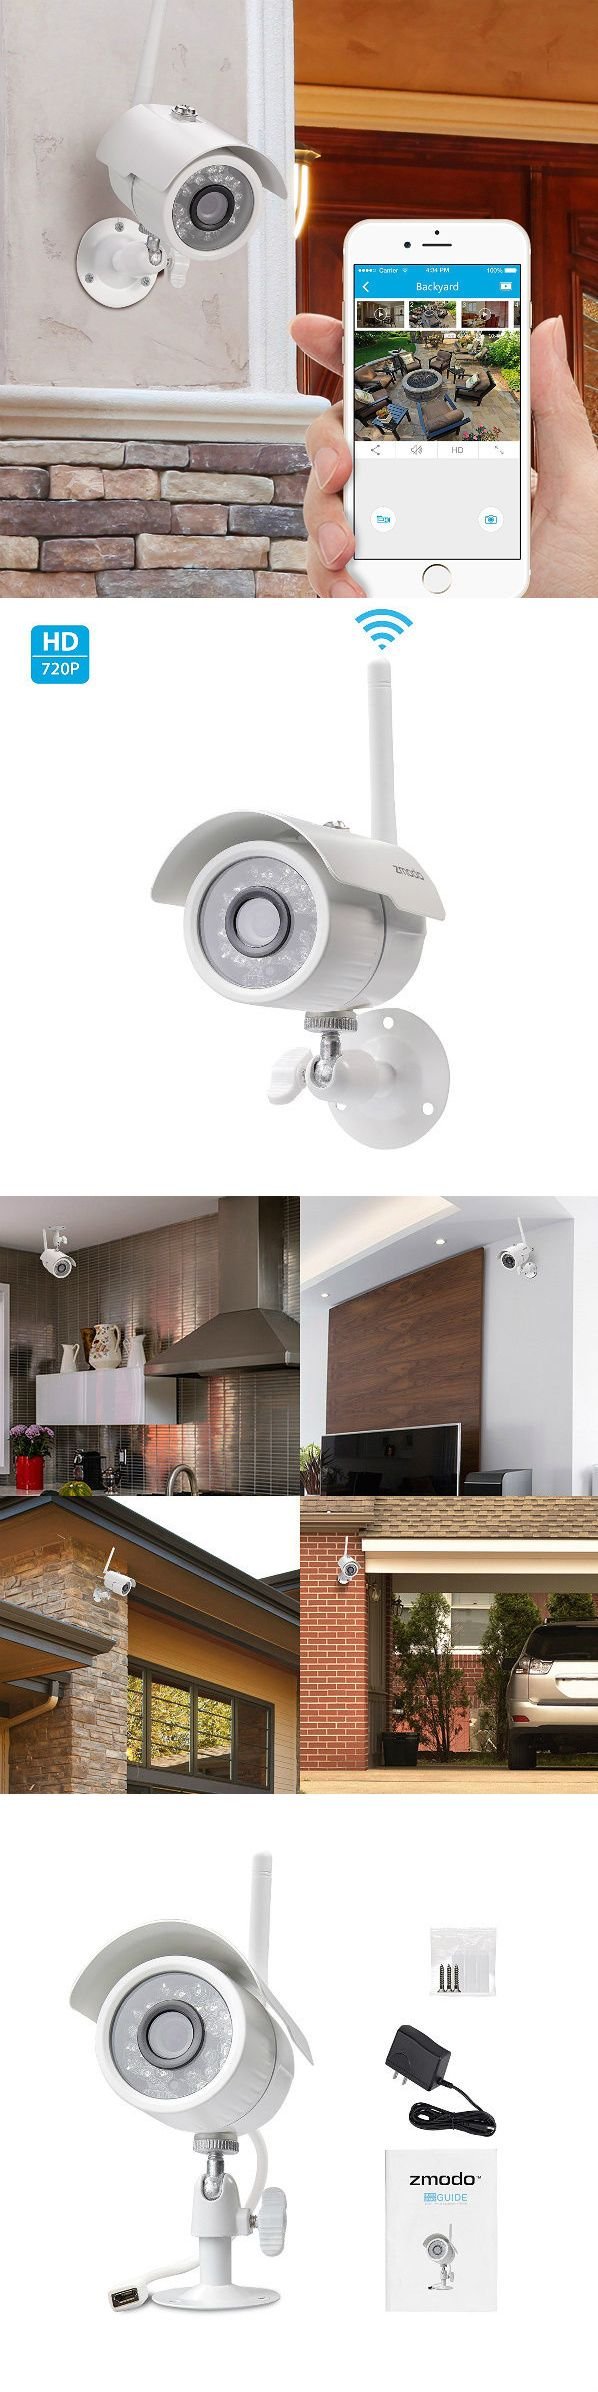 Security Cameras: Security Camera For Home Wireless Video Surveillance System Night Vision 720P -> BUY IT NOW ONLY: $48.99 on eBay!